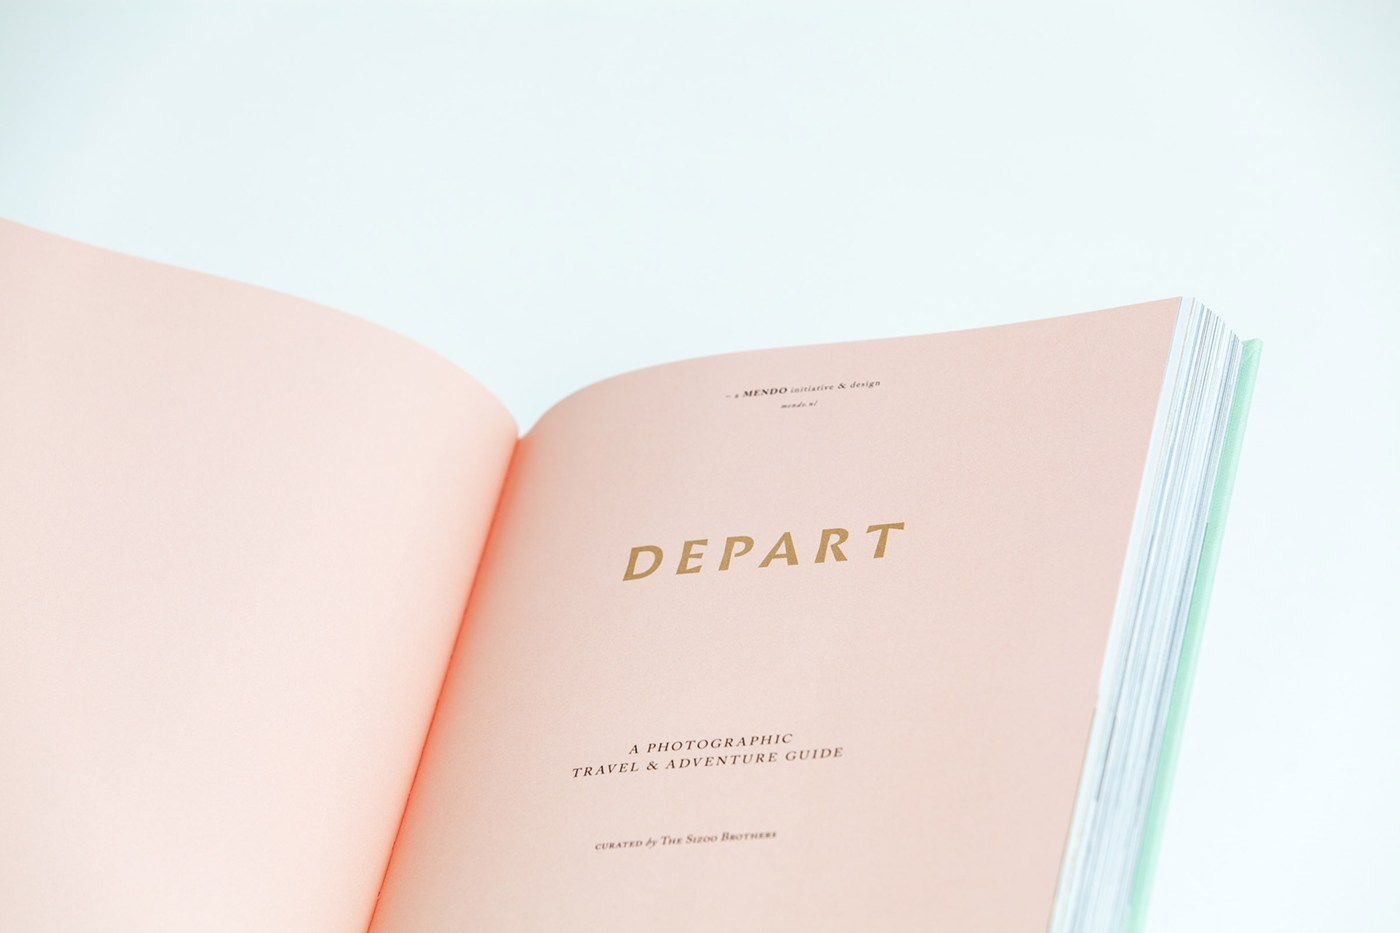 depart-mendo-book-2016-photographers-travel-2